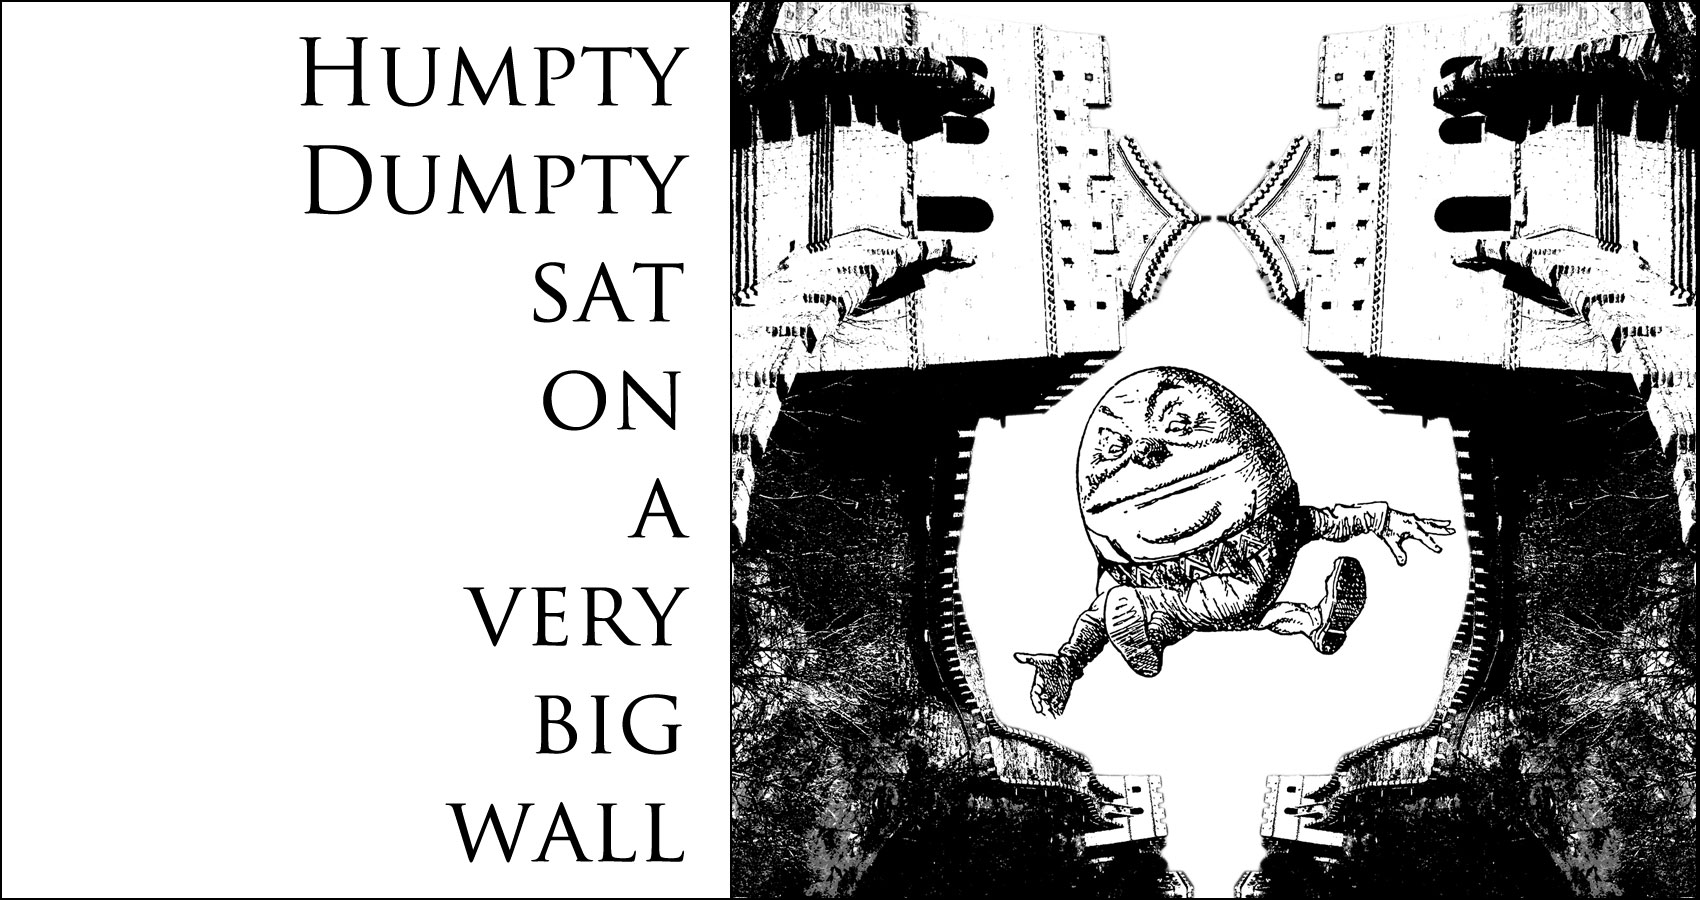 Humpty Dumpty Sat on a Very Big Wall by MR. QUIPTY at Spillwords.com